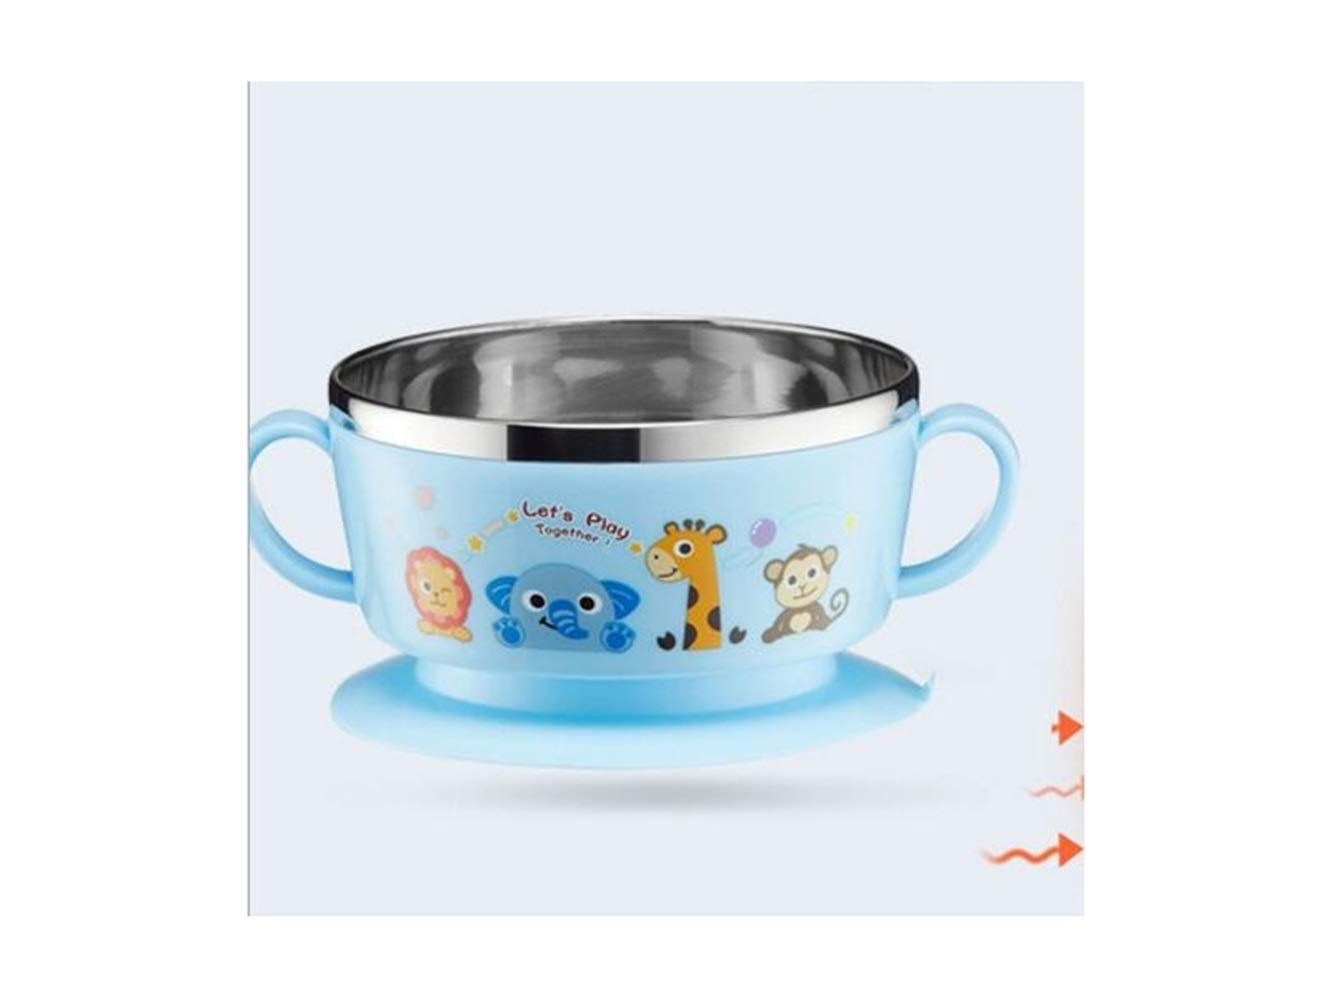 Yuchoi Contemporary Animal Pattern Baby Feeding Bowl Anti-Scald Stainless Steel Children Dish Insulation Bowl with Lid and Double Handles for Kids Students(Blue) by Yuchoi (Image #2)